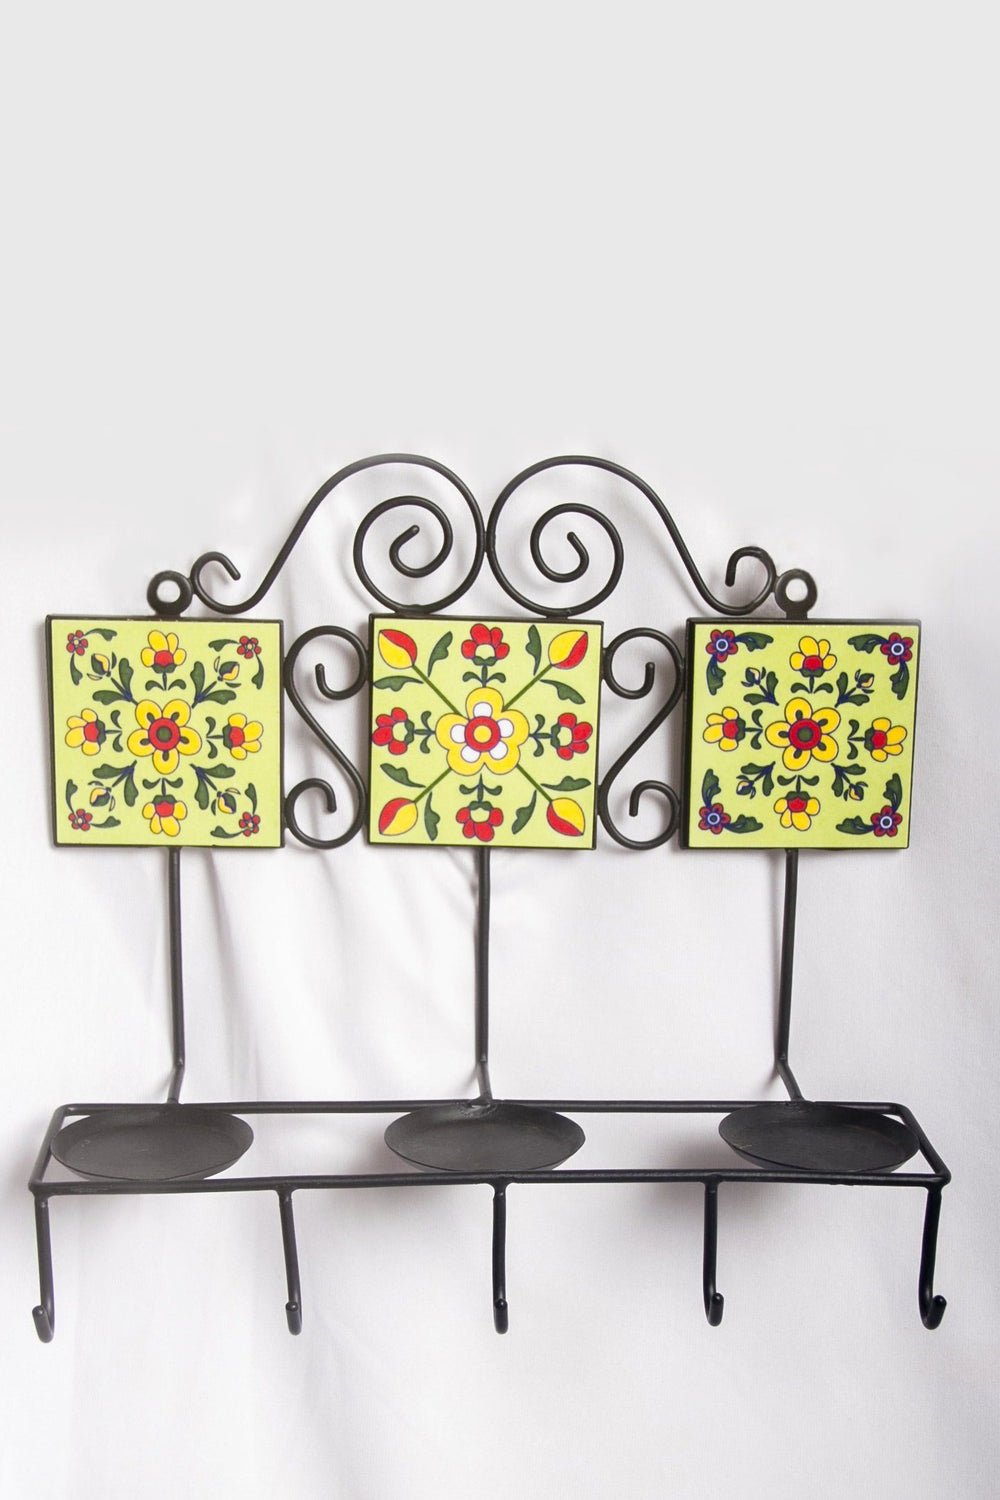 Three ceramic tiled square wall T light holder with hooks in green with yellow and red floral motif